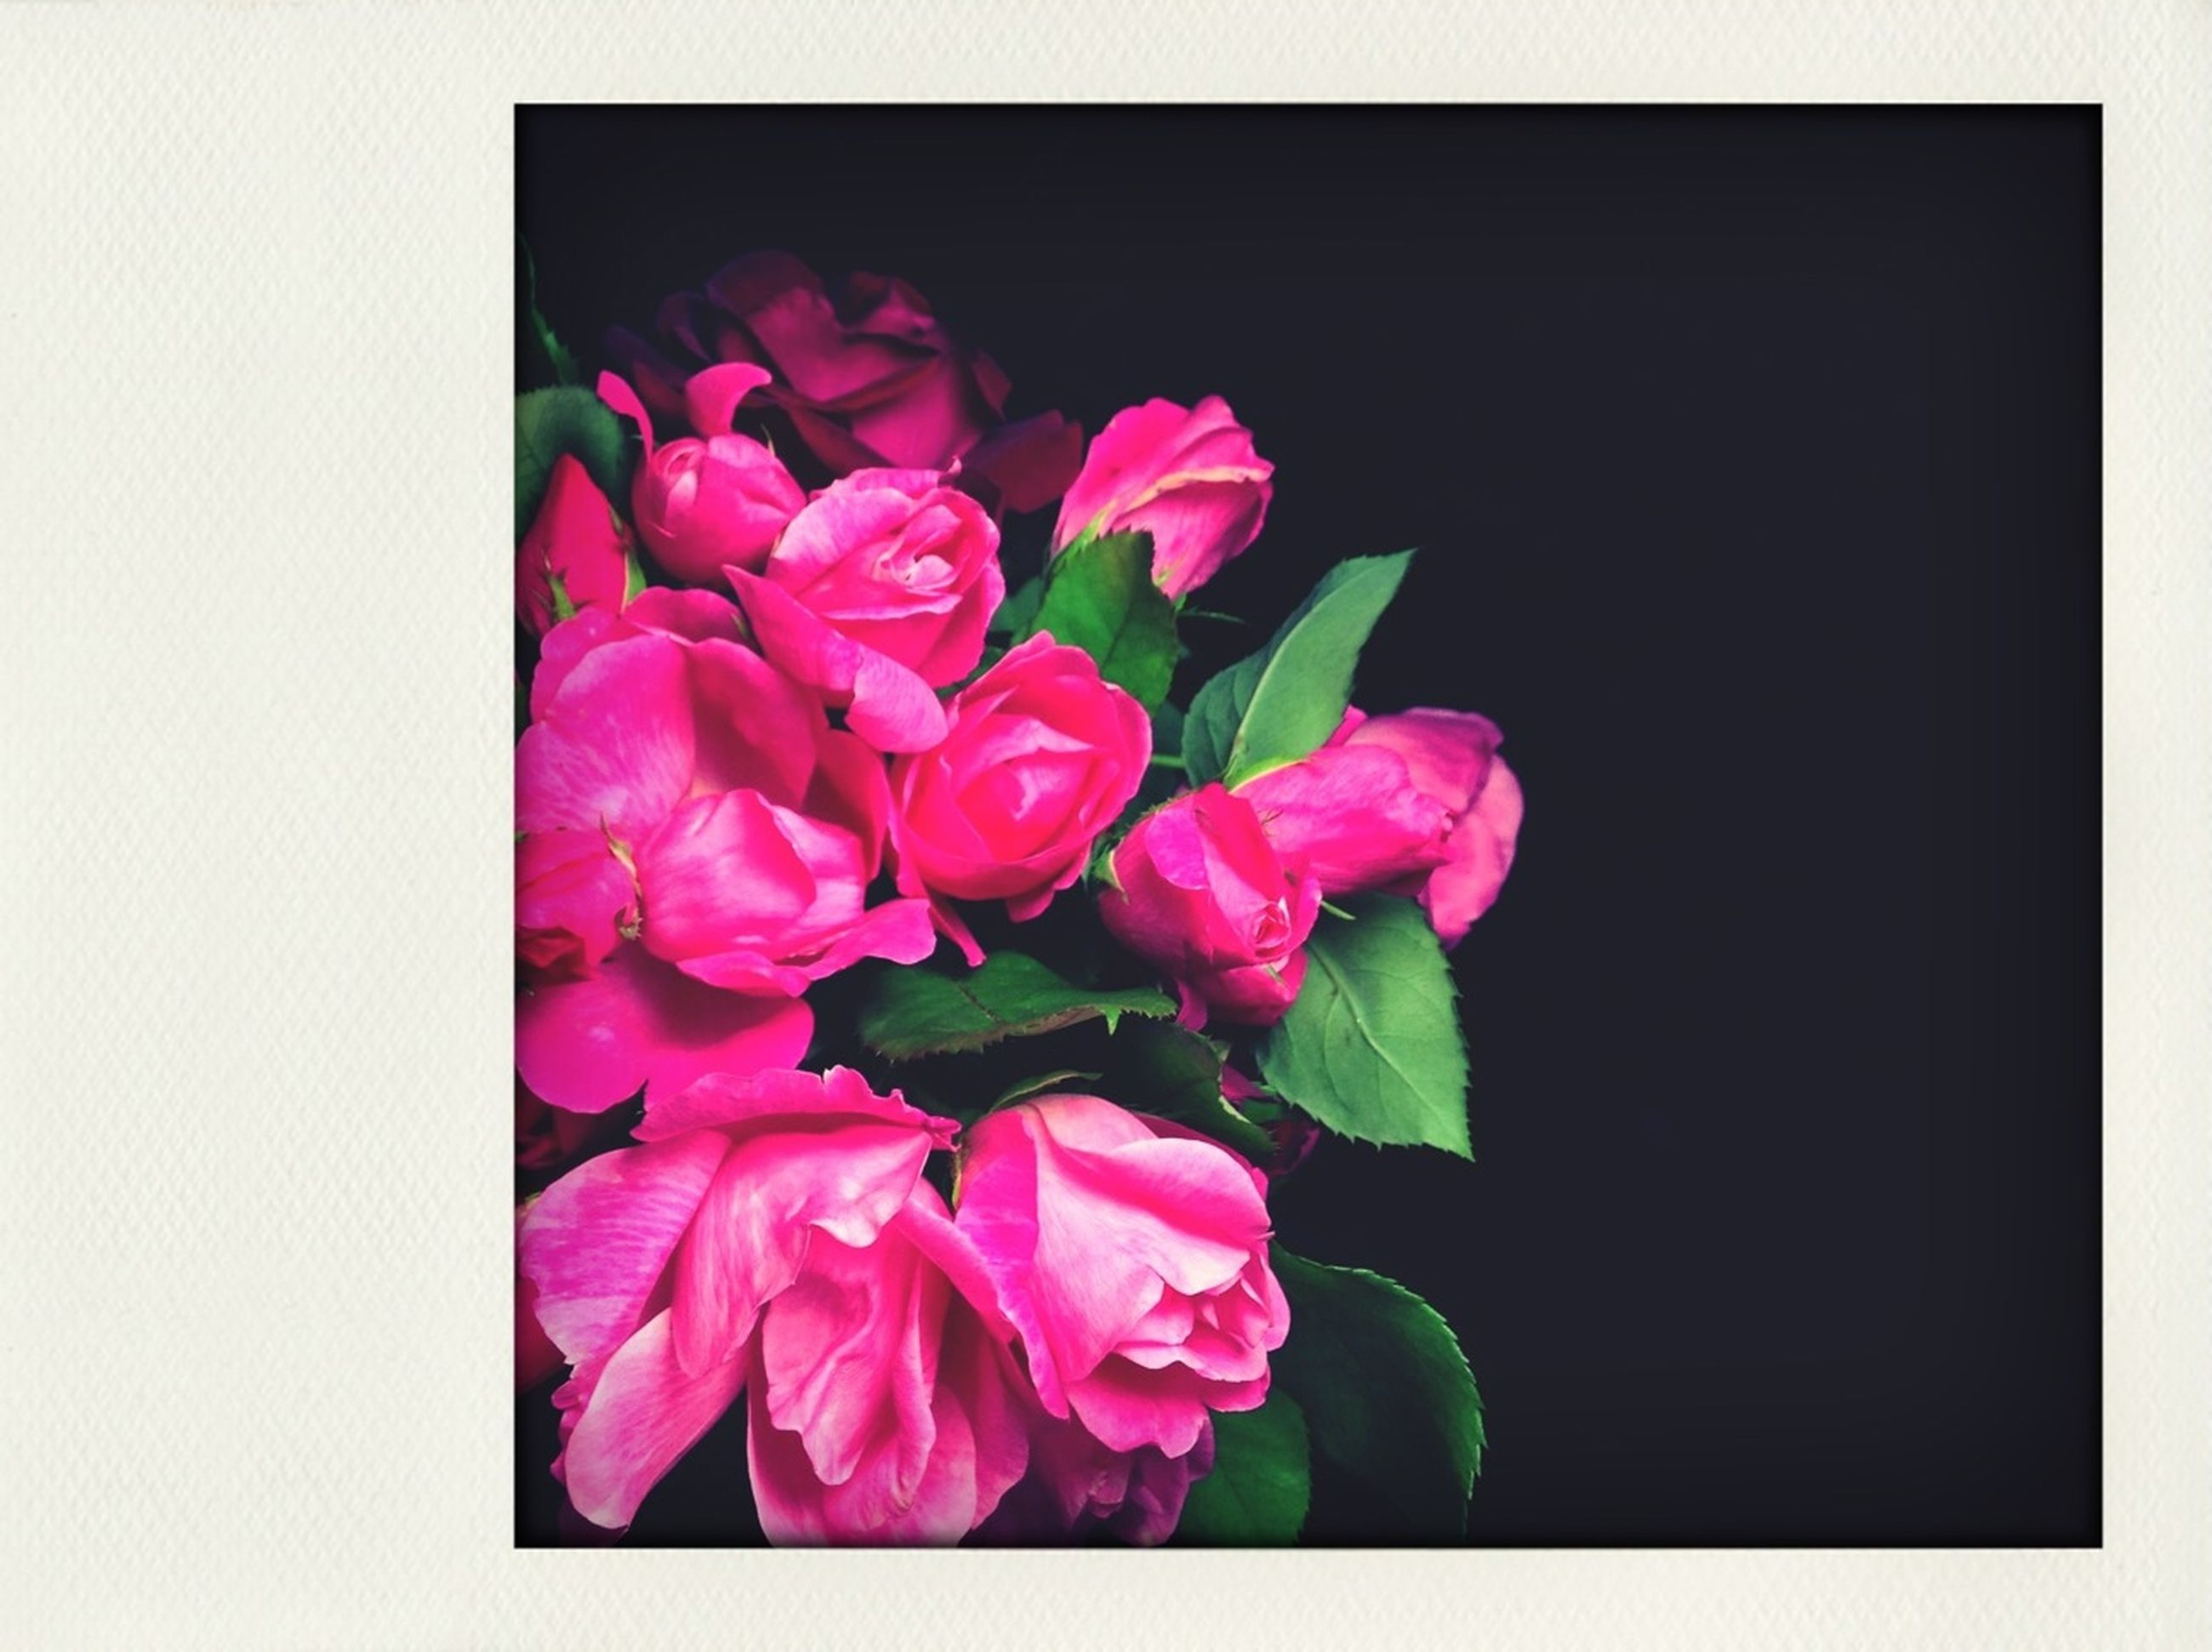 flower, petal, freshness, fragility, flower head, pink color, beauty in nature, studio shot, growth, close-up, indoors, nature, rose - flower, transfer print, plant, auto post production filter, blooming, leaf, bunch of flowers, no people